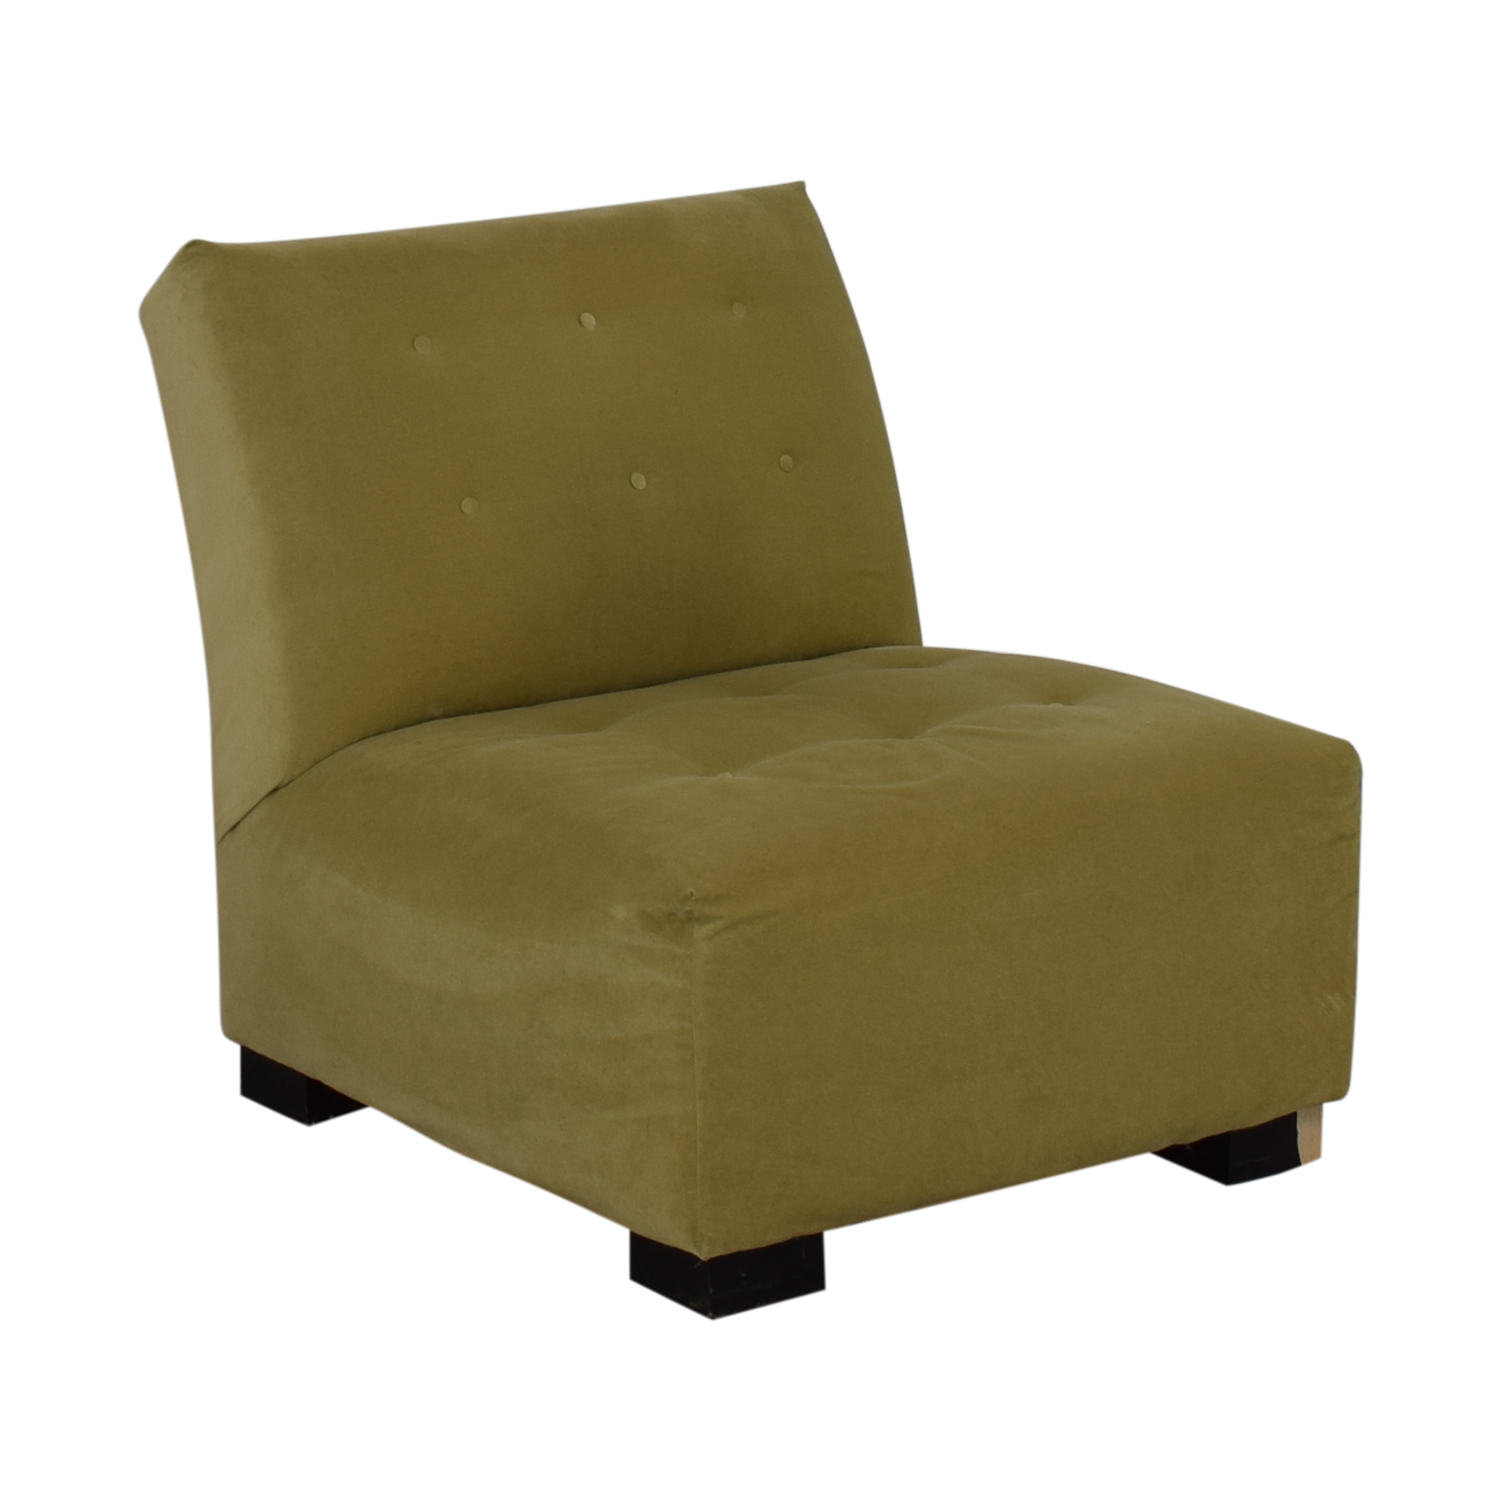 Crate & Barrel Crate & Barrel Sage Green Tufted Lounge Chair & Ottoman discount